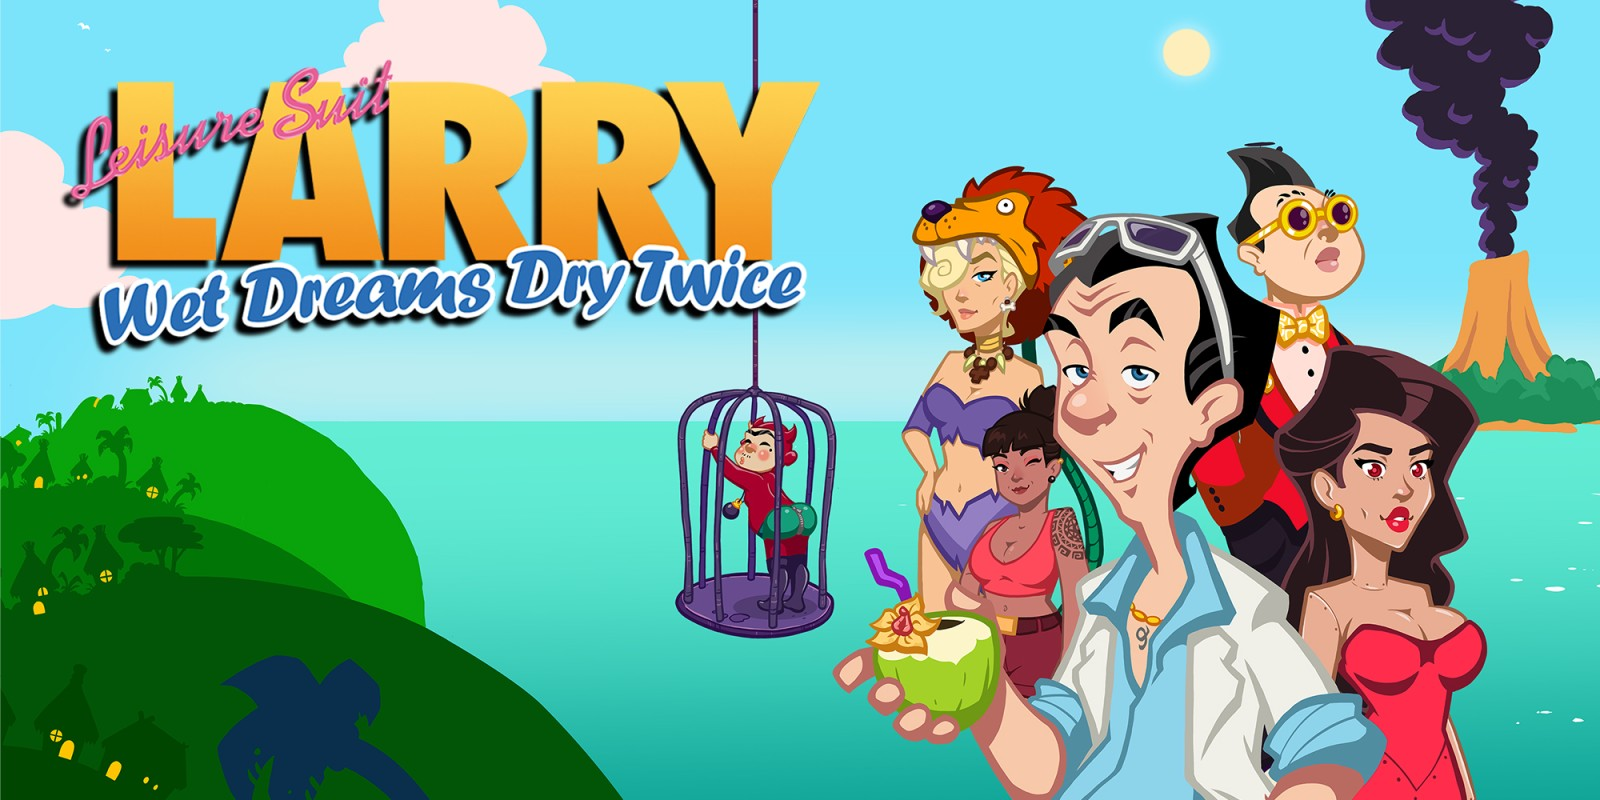 You are currently viewing Leisure Suit Larry: Wet Dreams Dry Twice – обзор